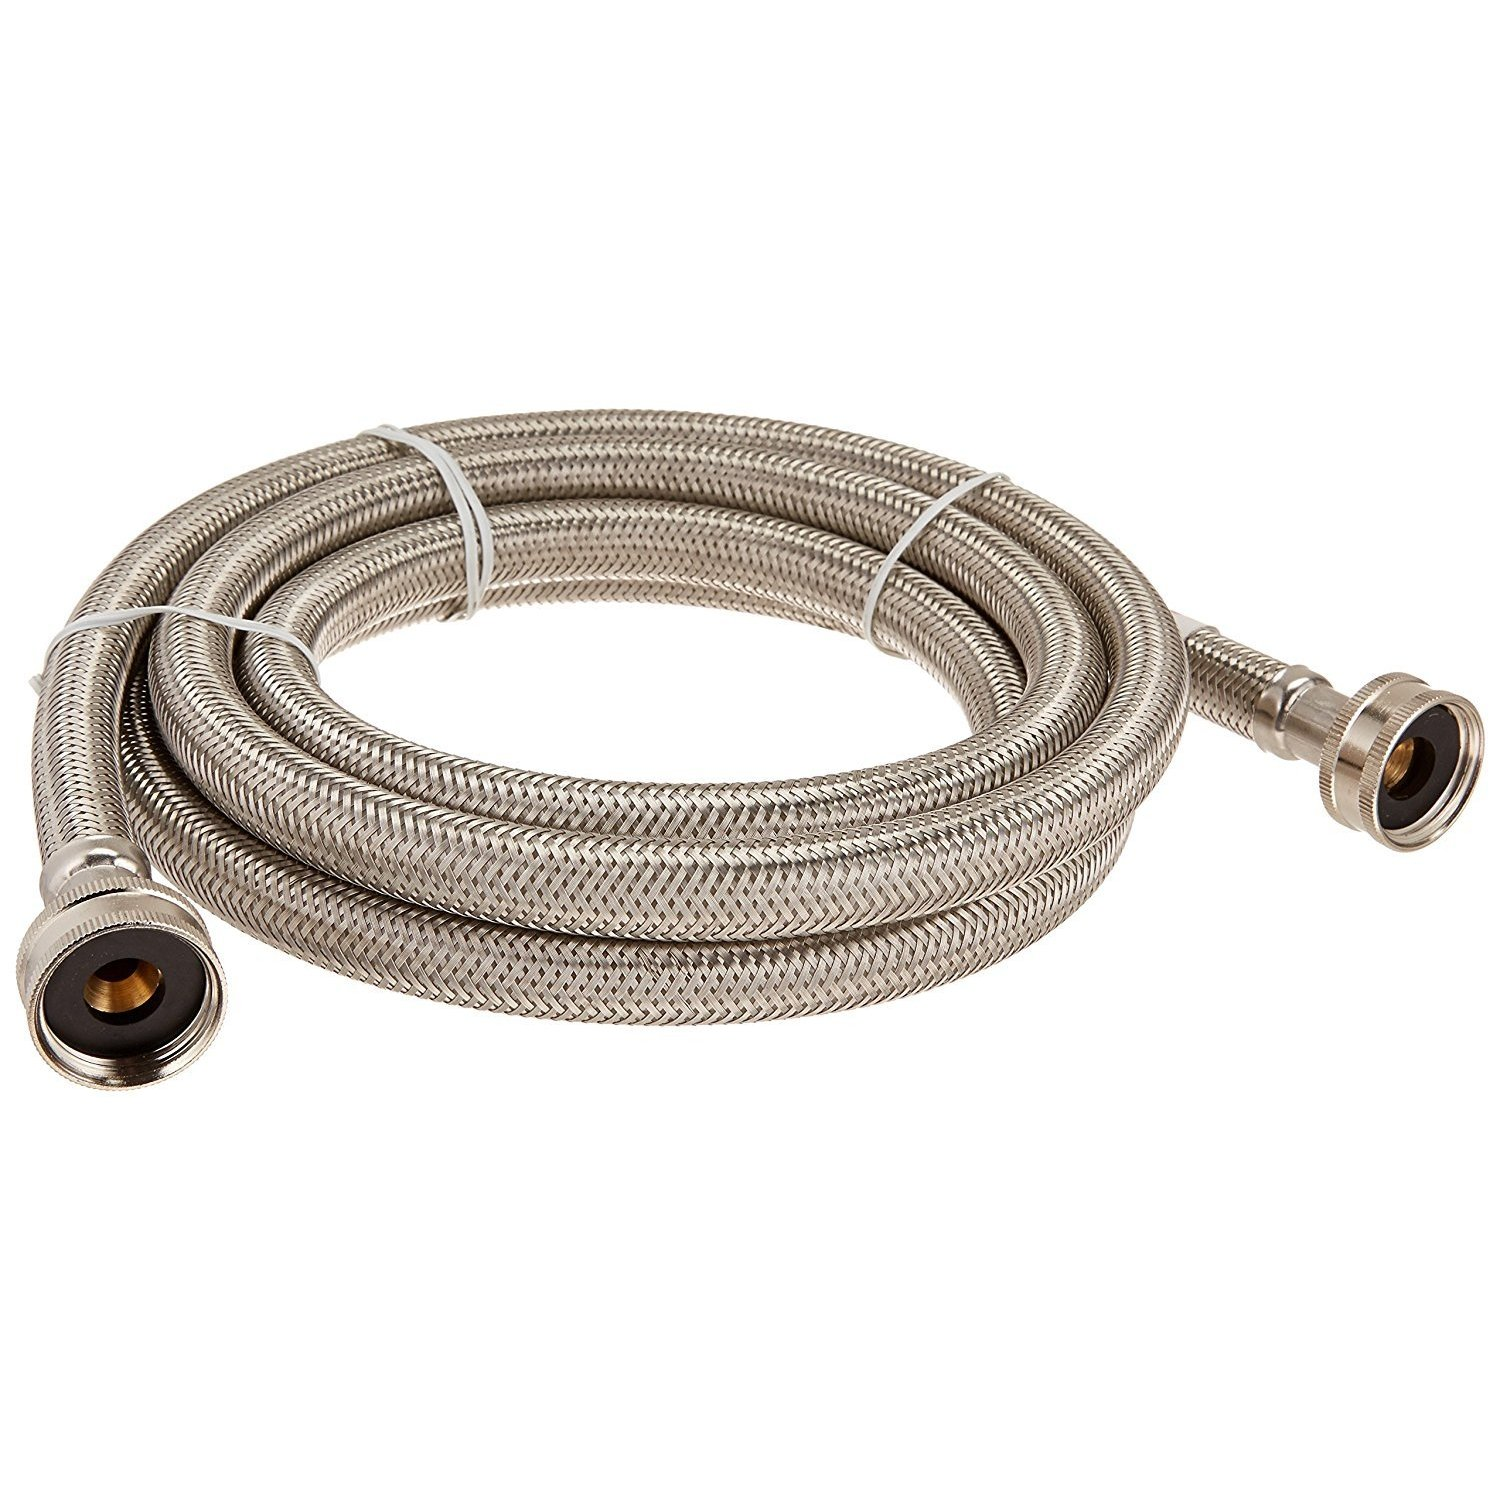 By-Certified Appliance Washing Machine Connector, Wm96ss 8ft .75in-fgh .5in-ld Wash Machine Connector